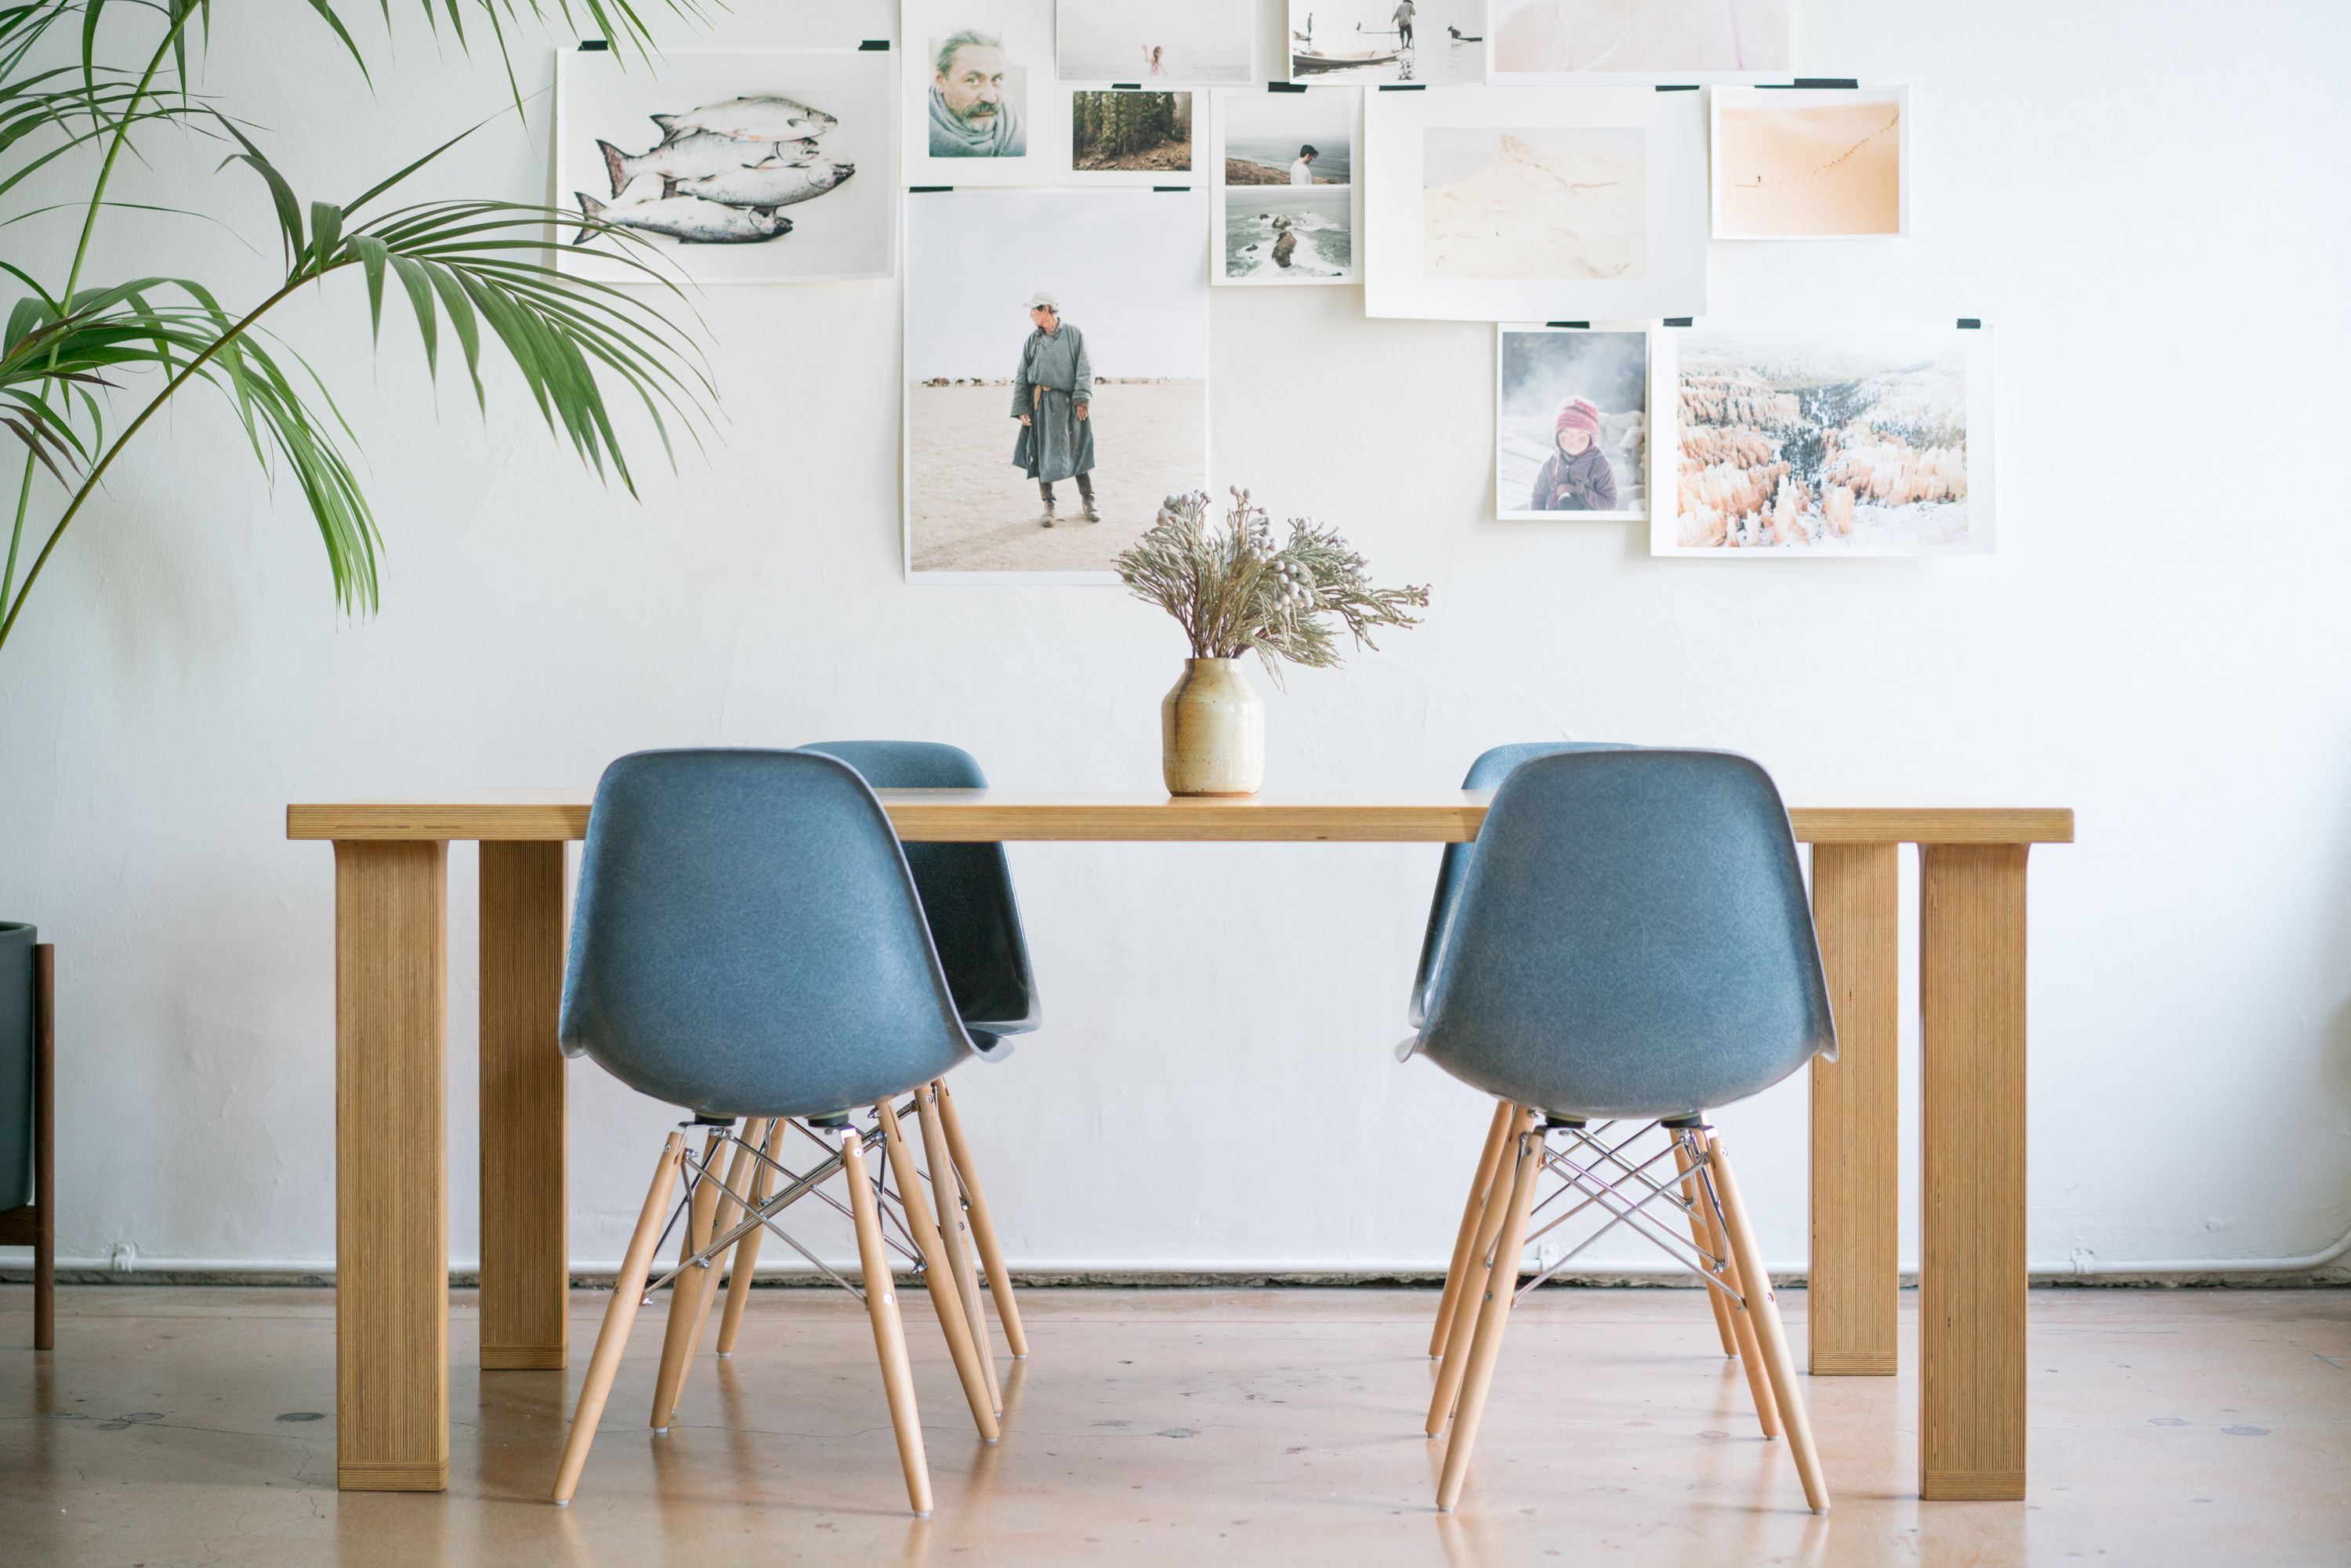 Attractive Modernica Tenon Table And Case Study Fiberglass Shell Chairs In Nantucket